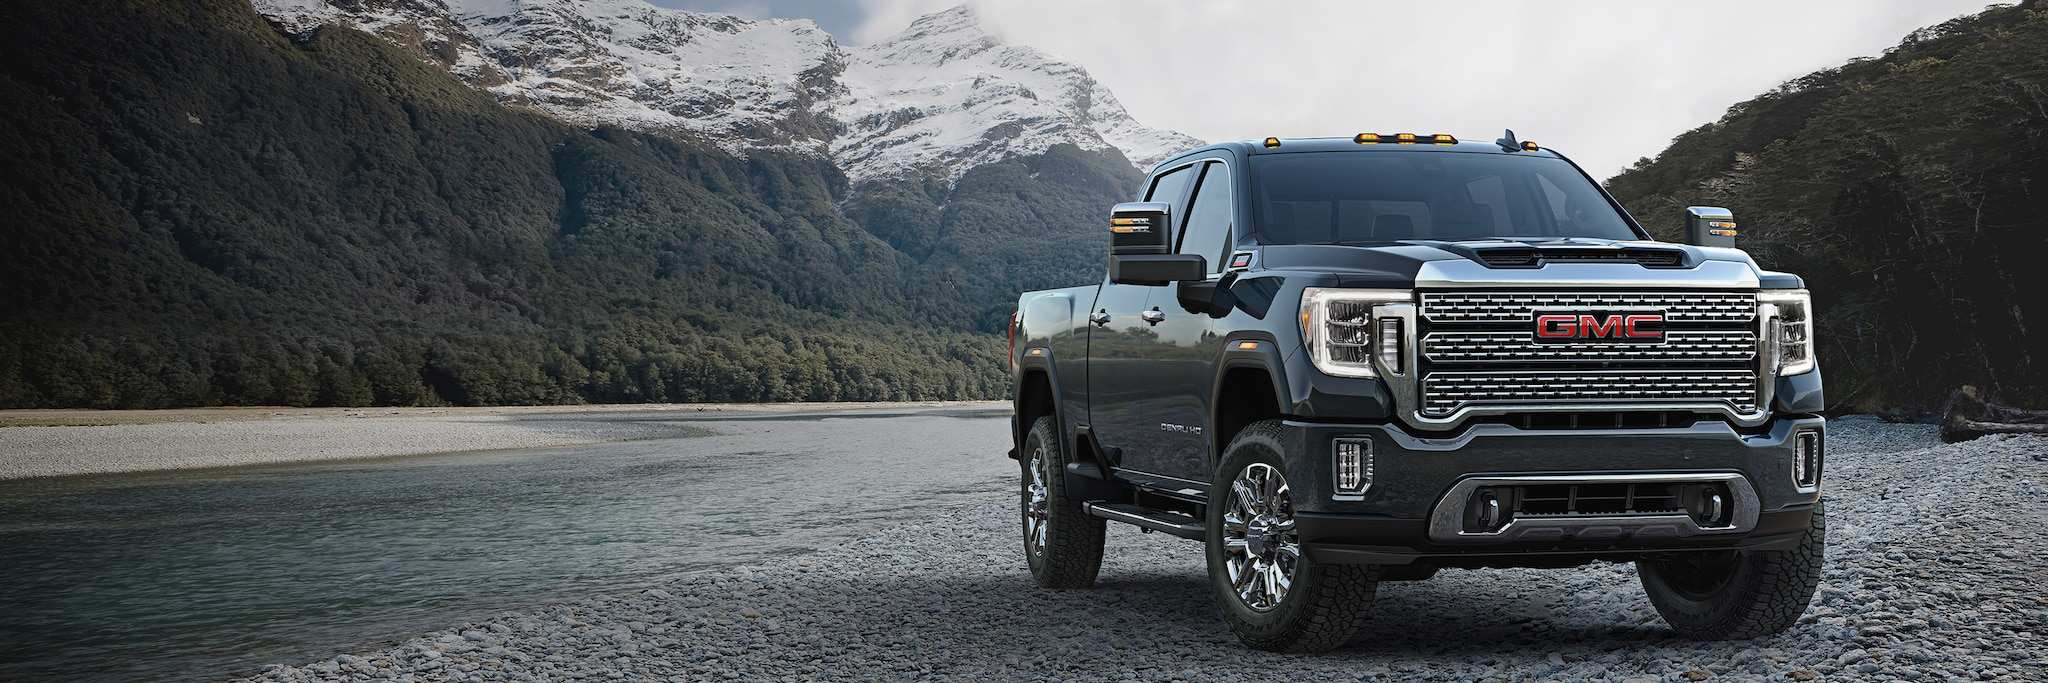 95 Gallery of Gmc Pickup 2020 Research New by Gmc Pickup 2020